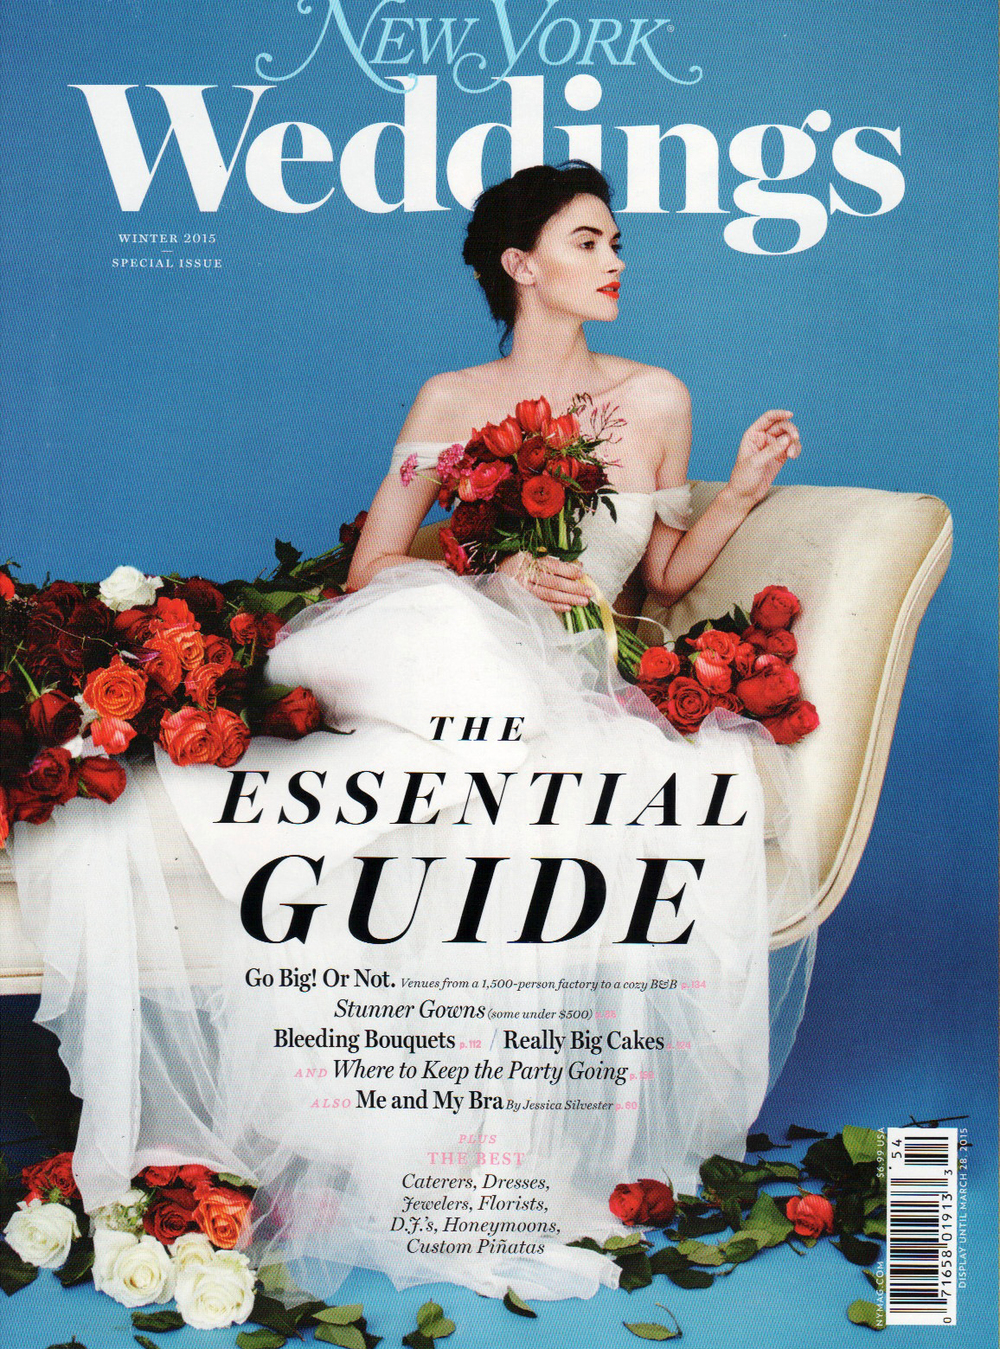 New York Weddings Winter 2015